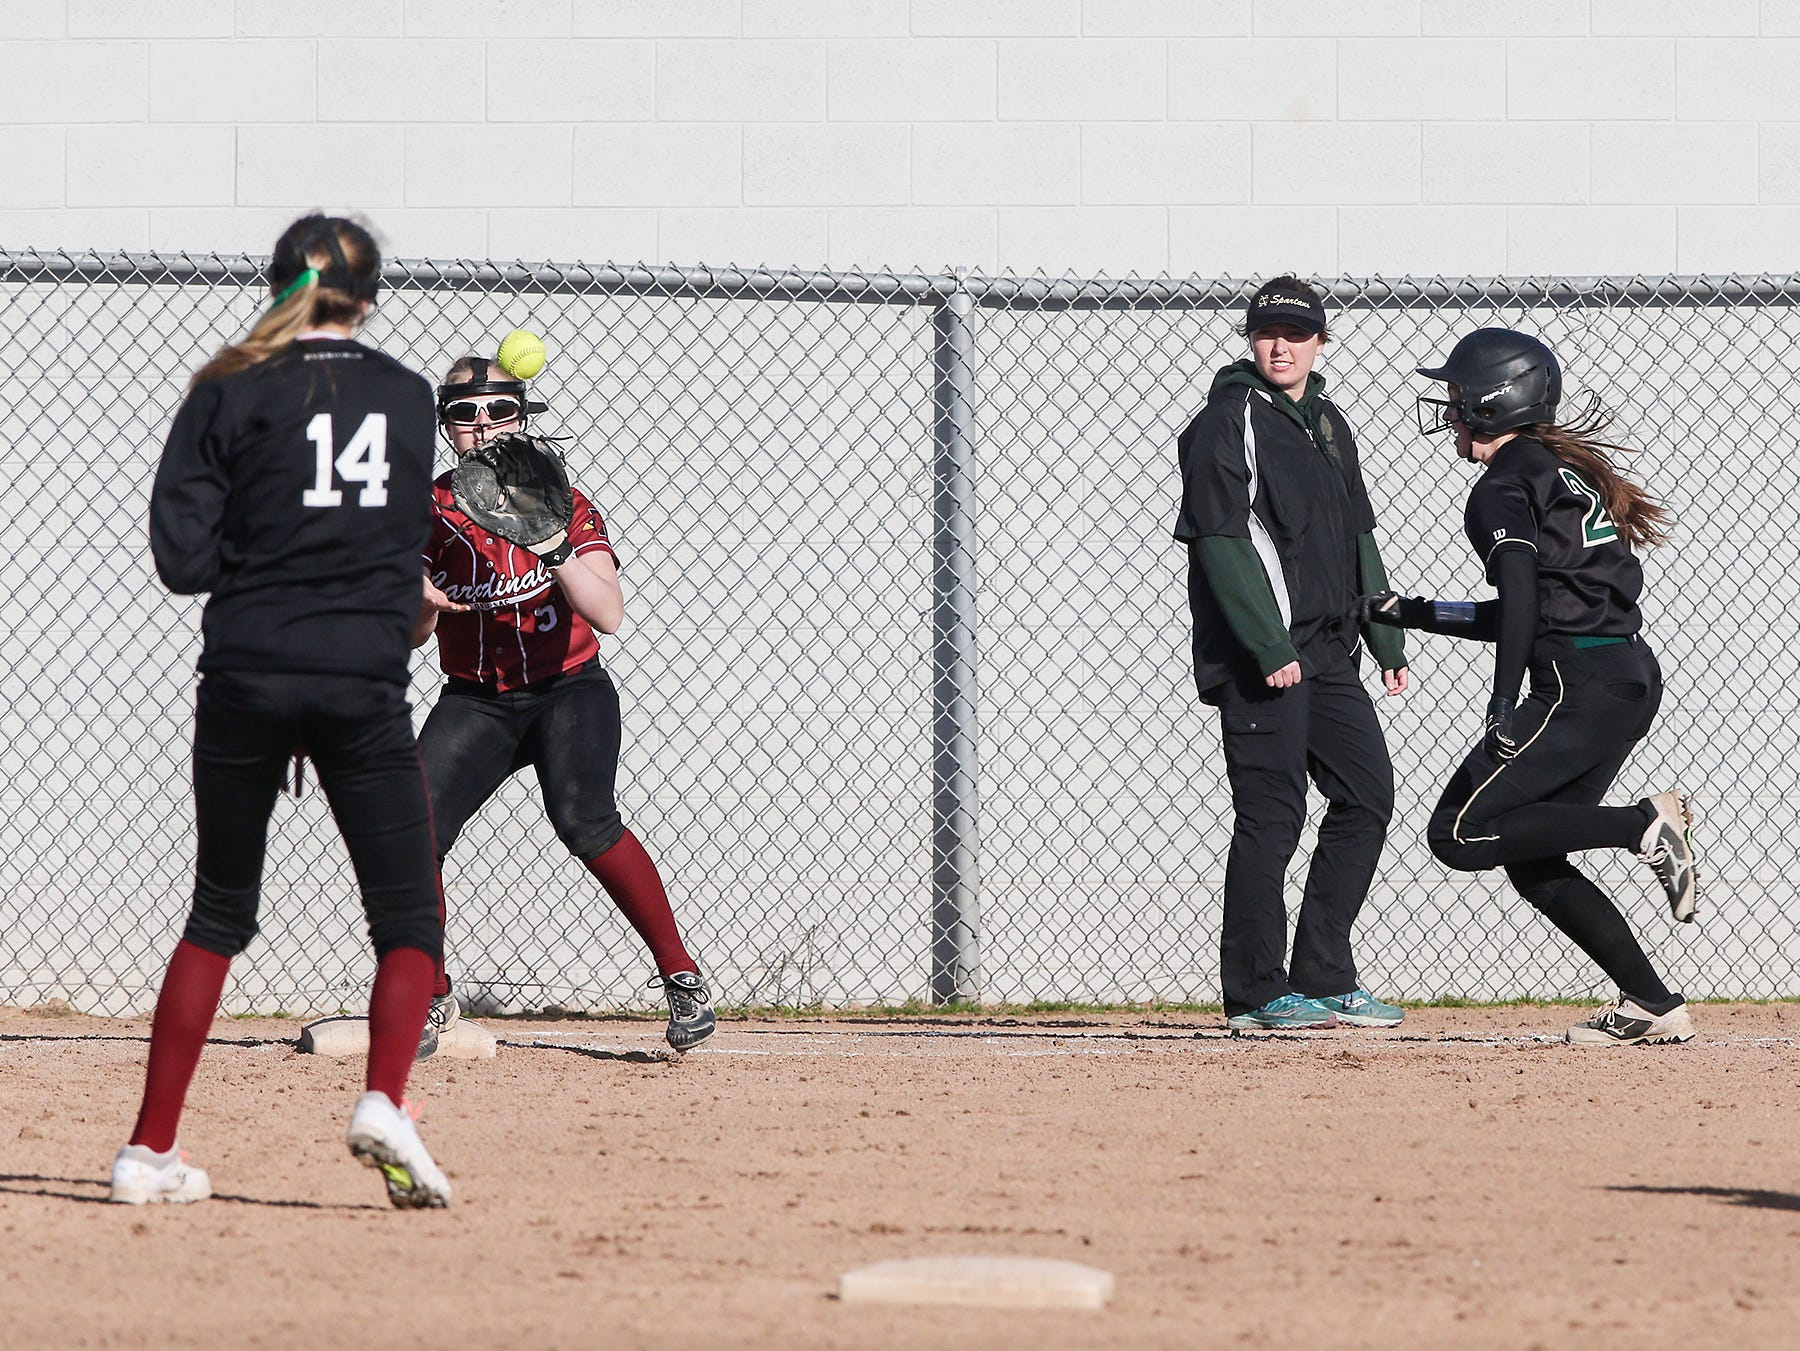 Fond du Lac High School softball's Nyah Odekirk (14) throws to Brianna Biermann (3) to tag out Oshkosh North High School's Emma Leib (24) during their game Friday, April 26, 2019 in Fond du Lac, Wis. Doug Raflik/USA TODAY NETWORK-Wisconsin